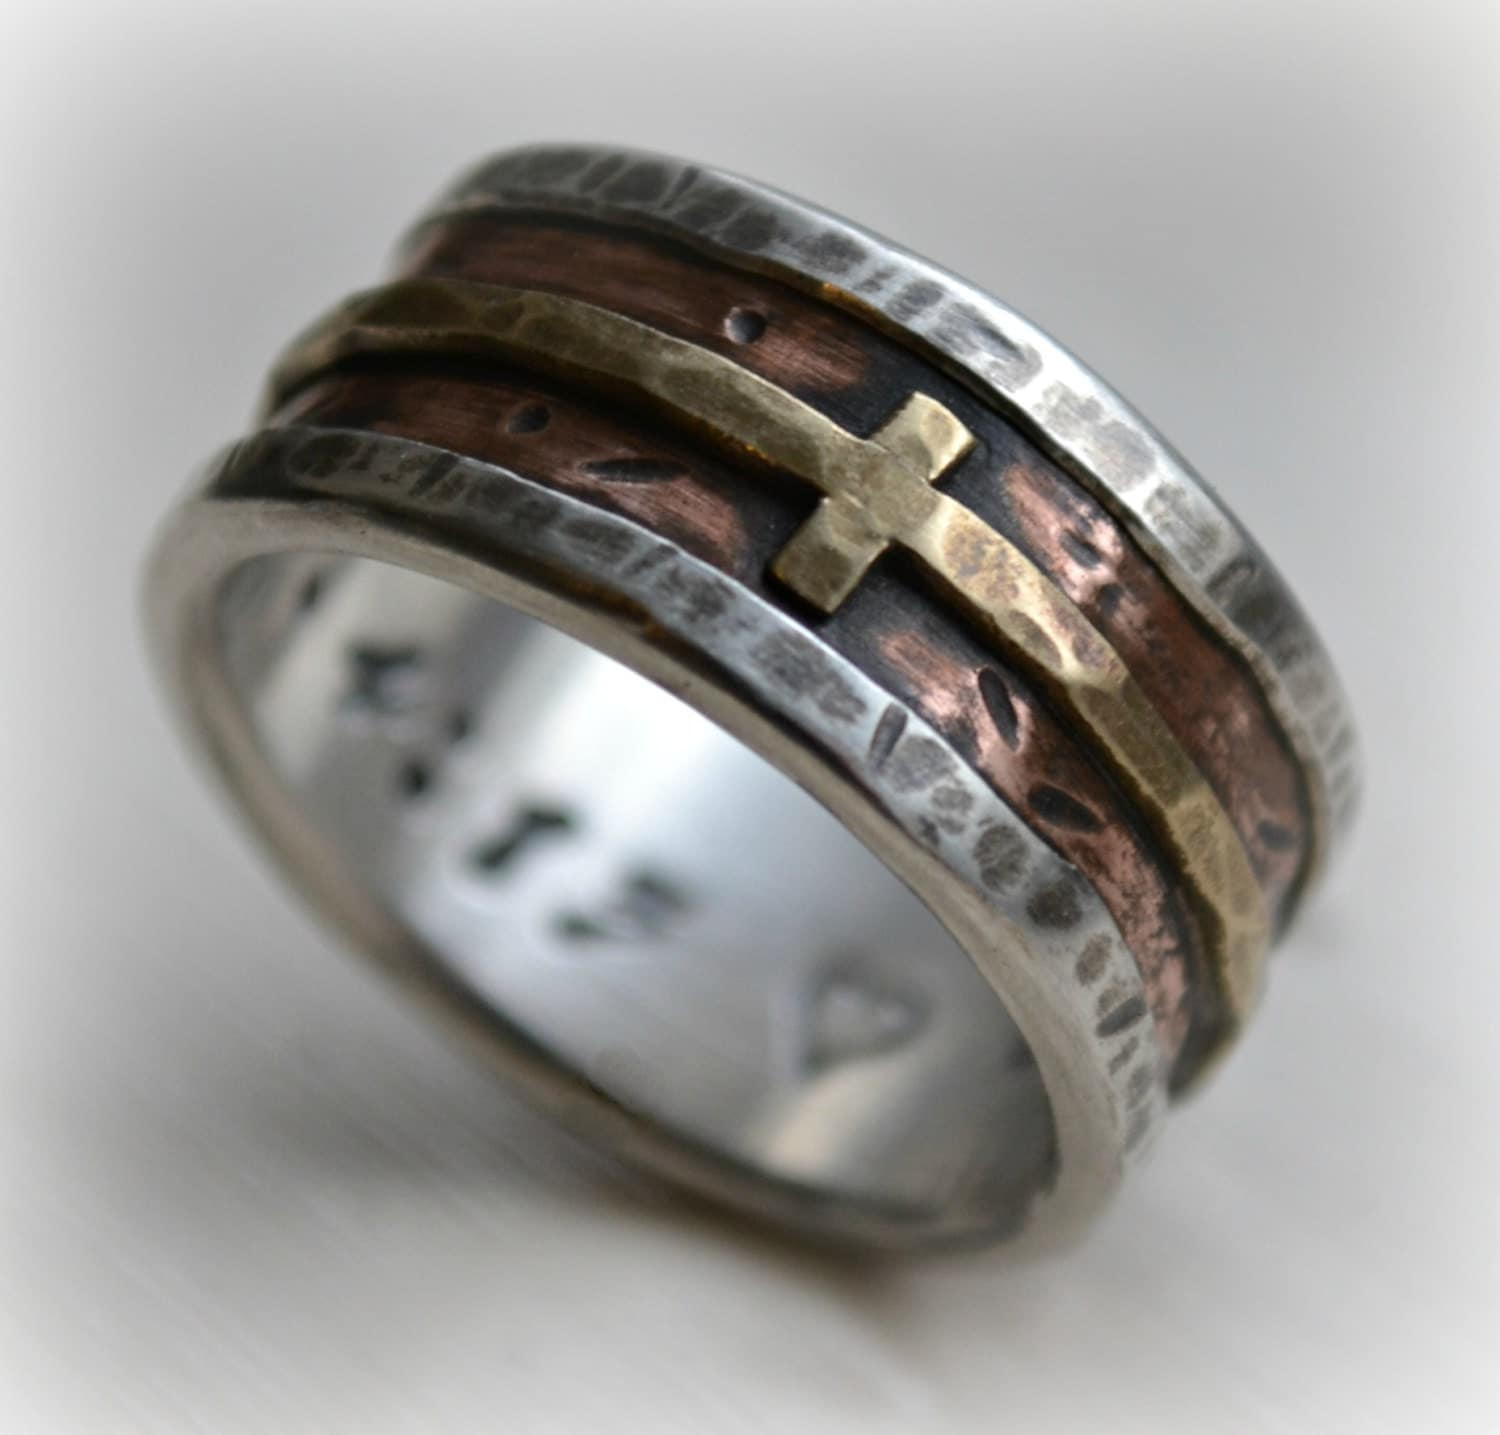 mens cross ring james avery wedding bands mens wedding band rustic fine silver copper and brass cross handmade artisan designed wide band ring manly Christian ring customized